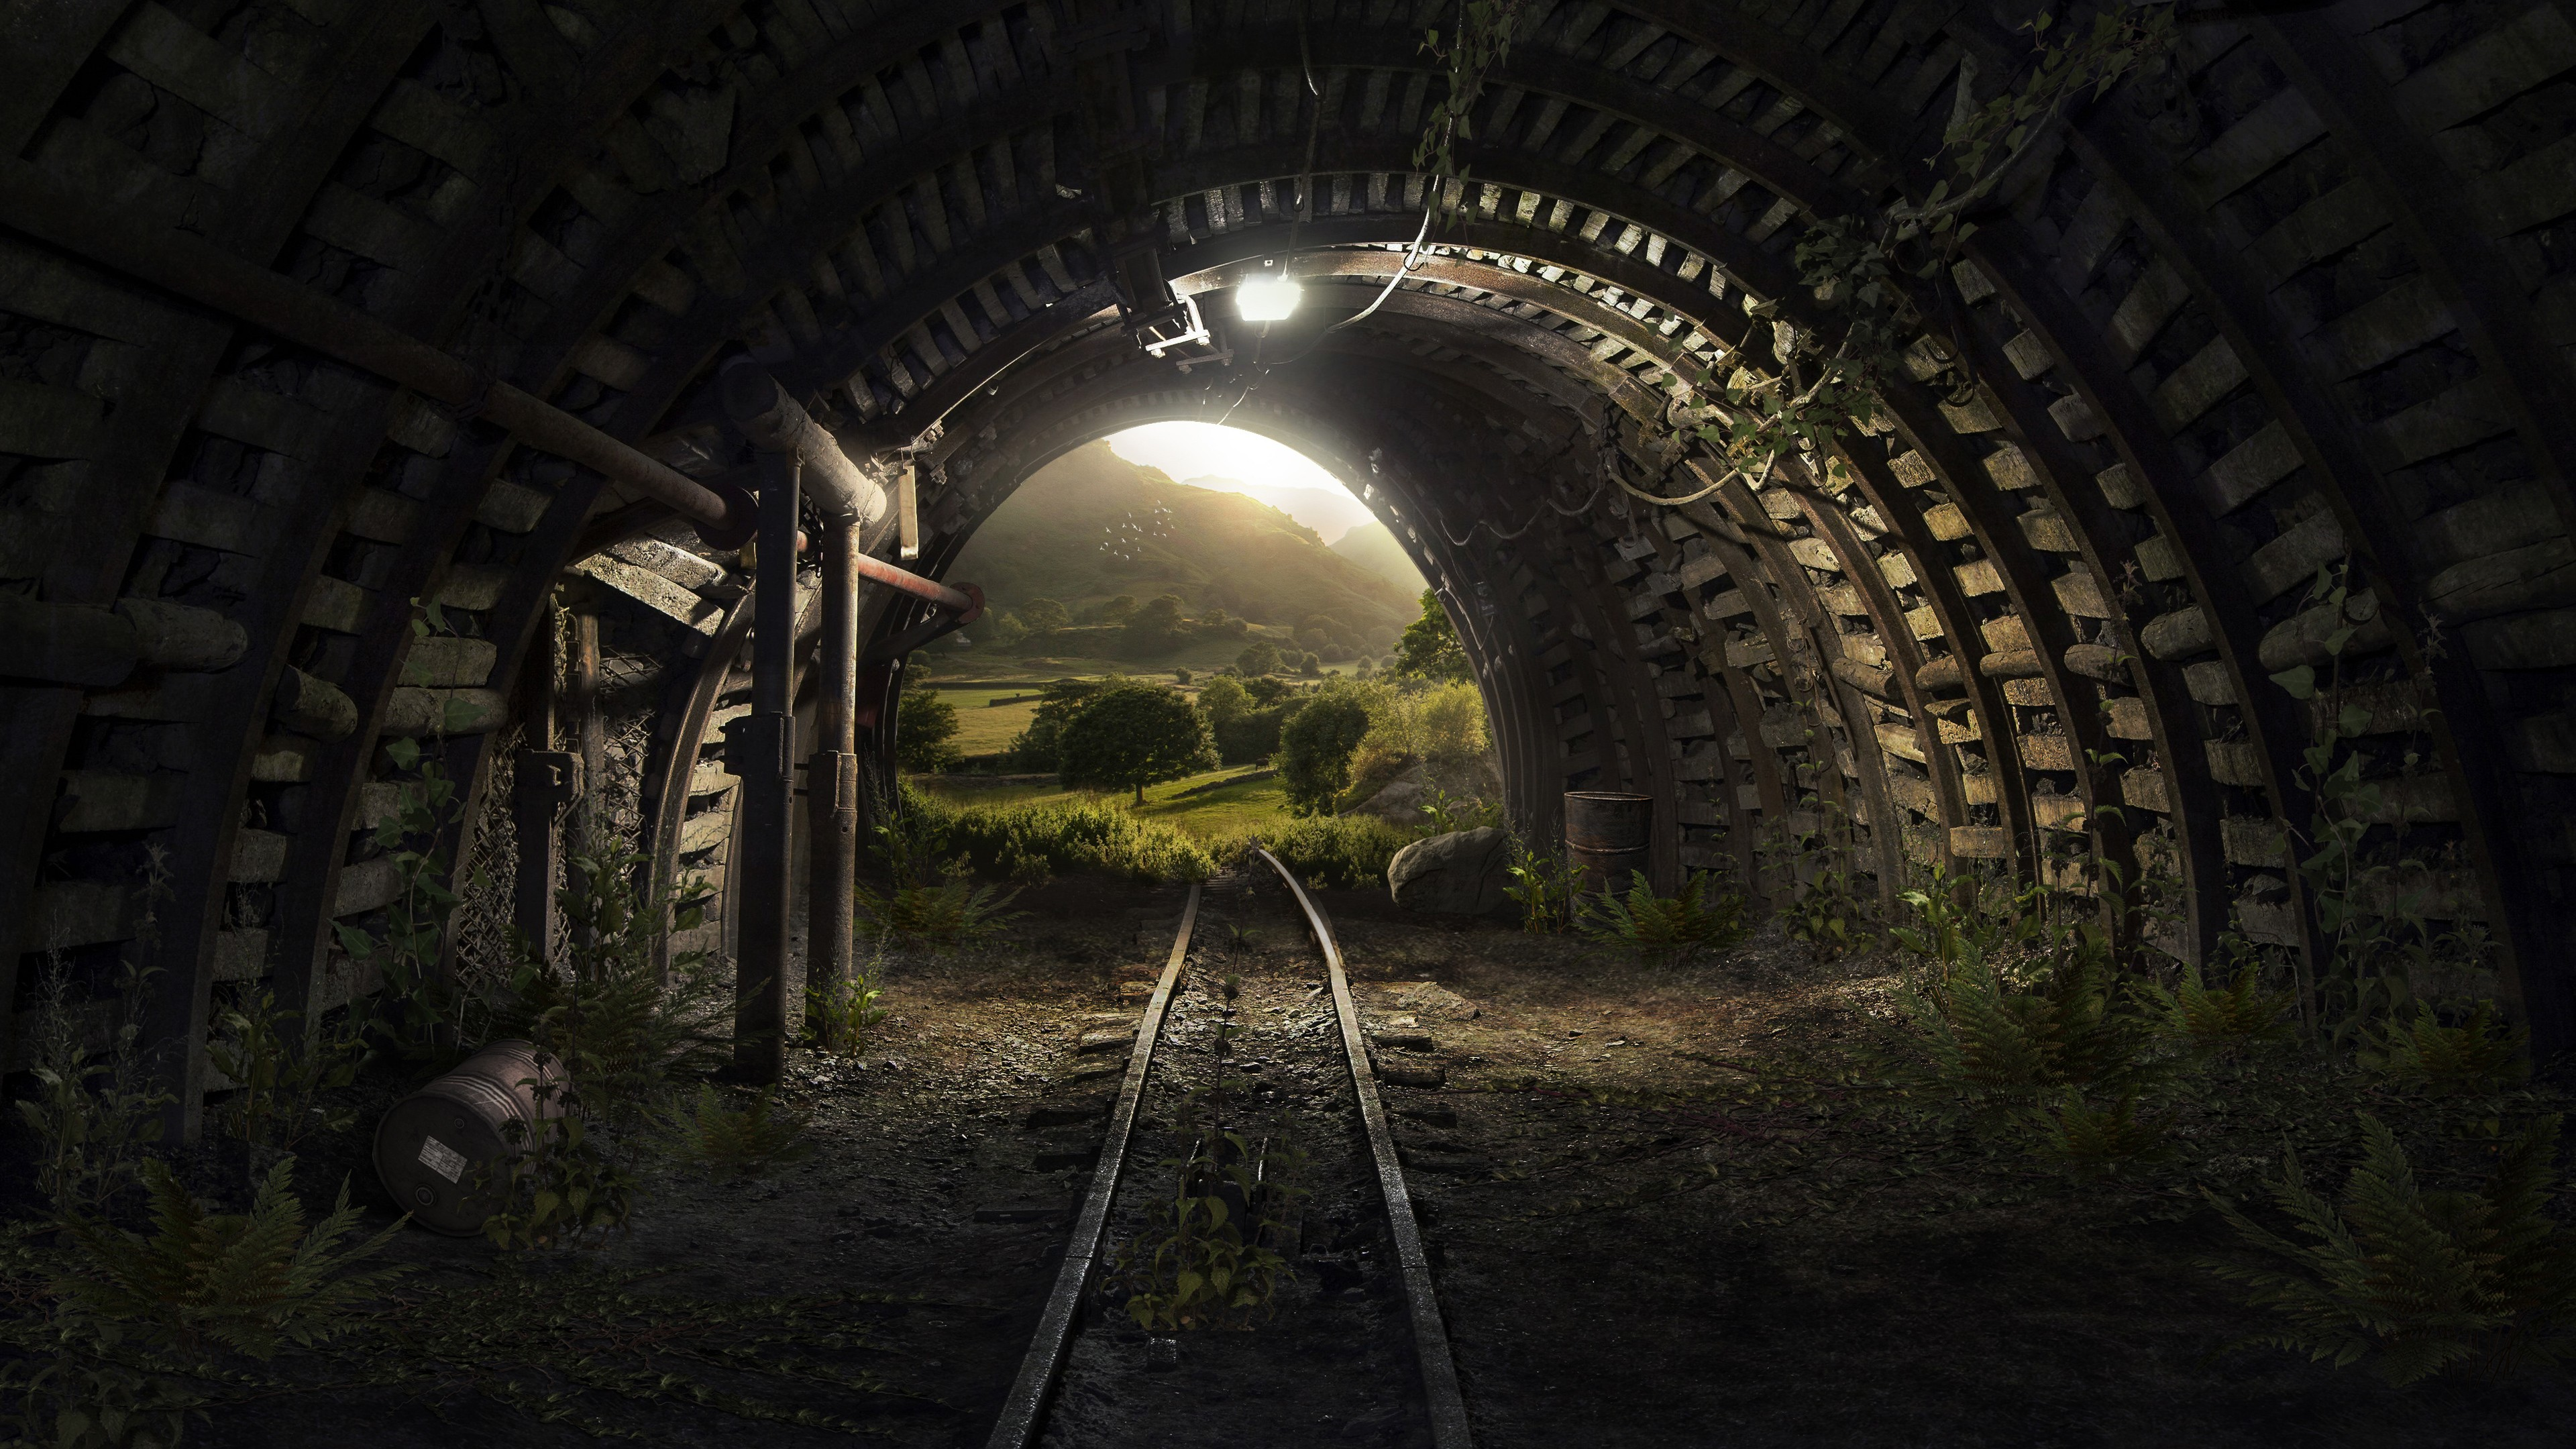 Cute Wallpapers For Iphone 5s Tunnel Tracks 4k Wallpapers Hd Wallpapers Id 22596